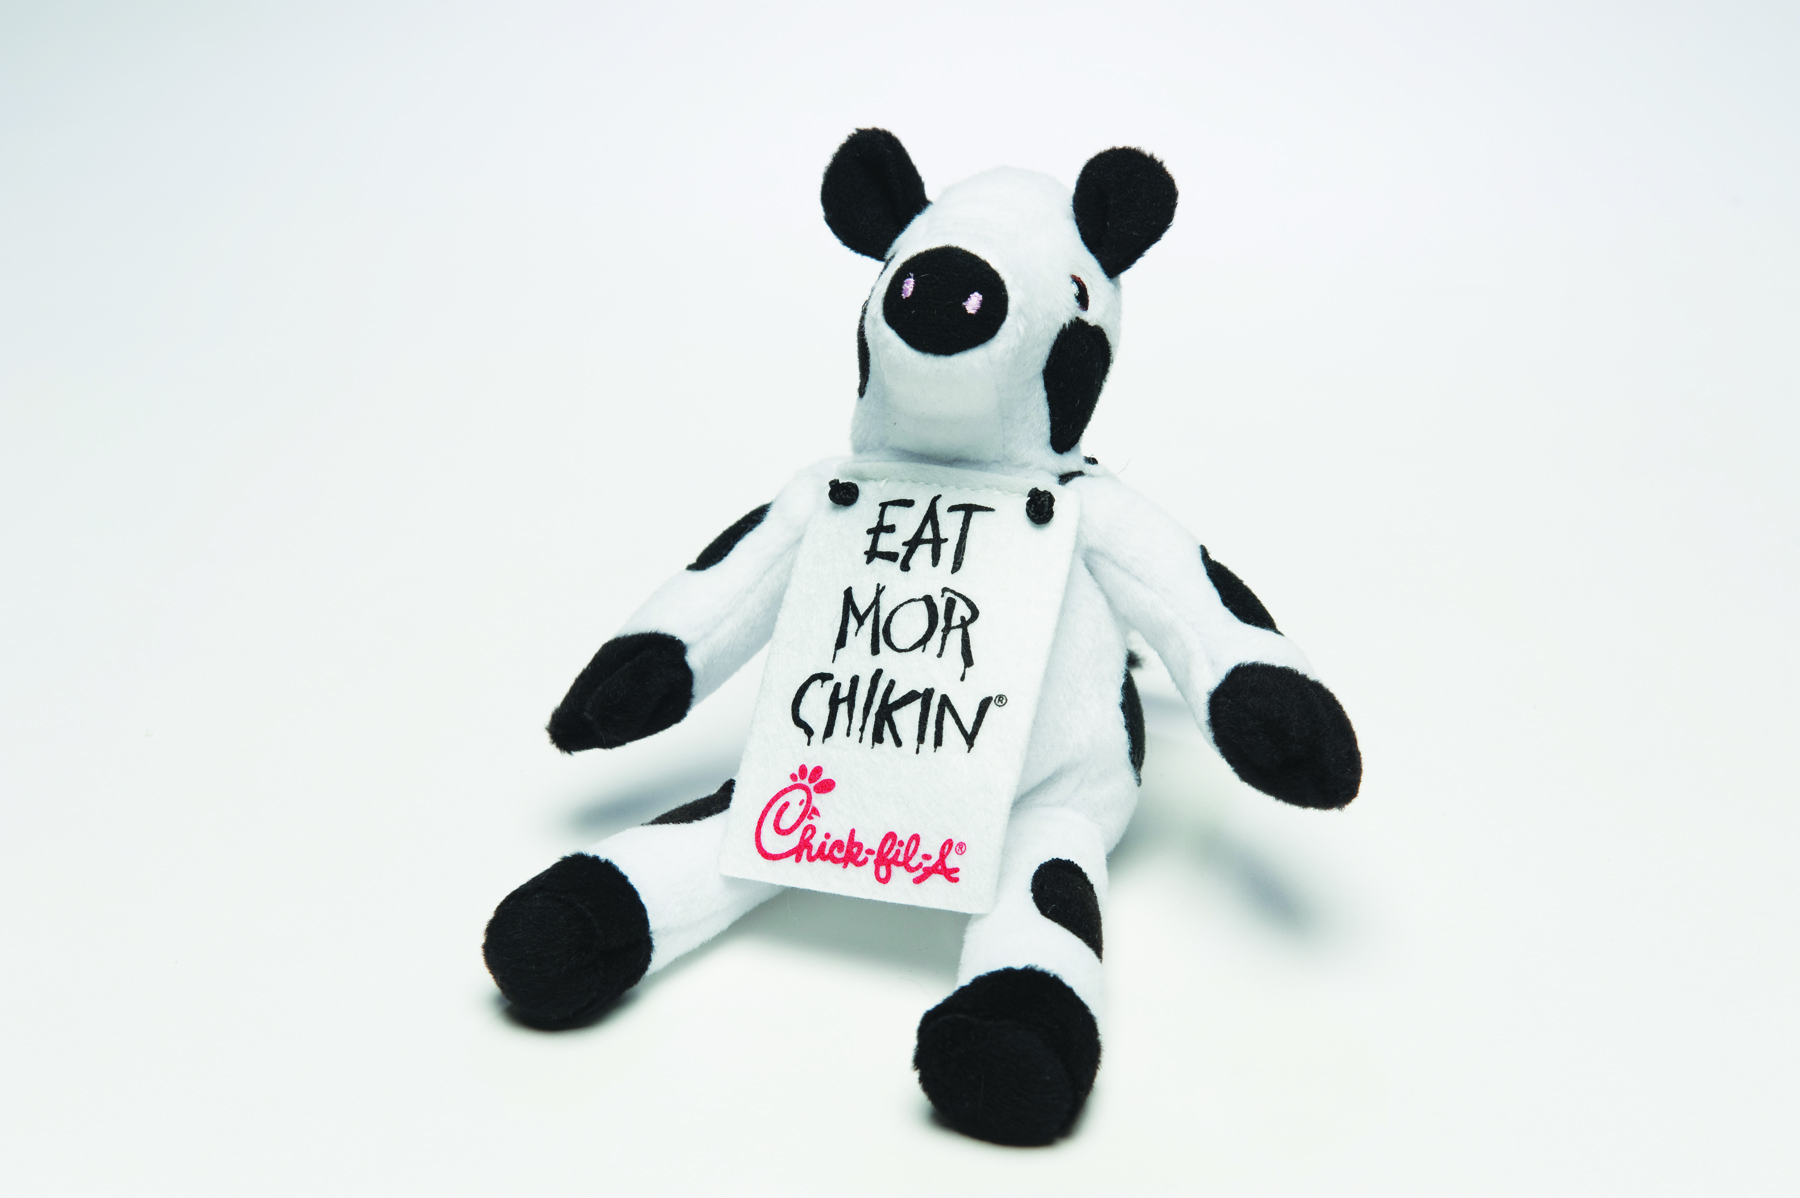 1998 – The first Plush Cow is produced